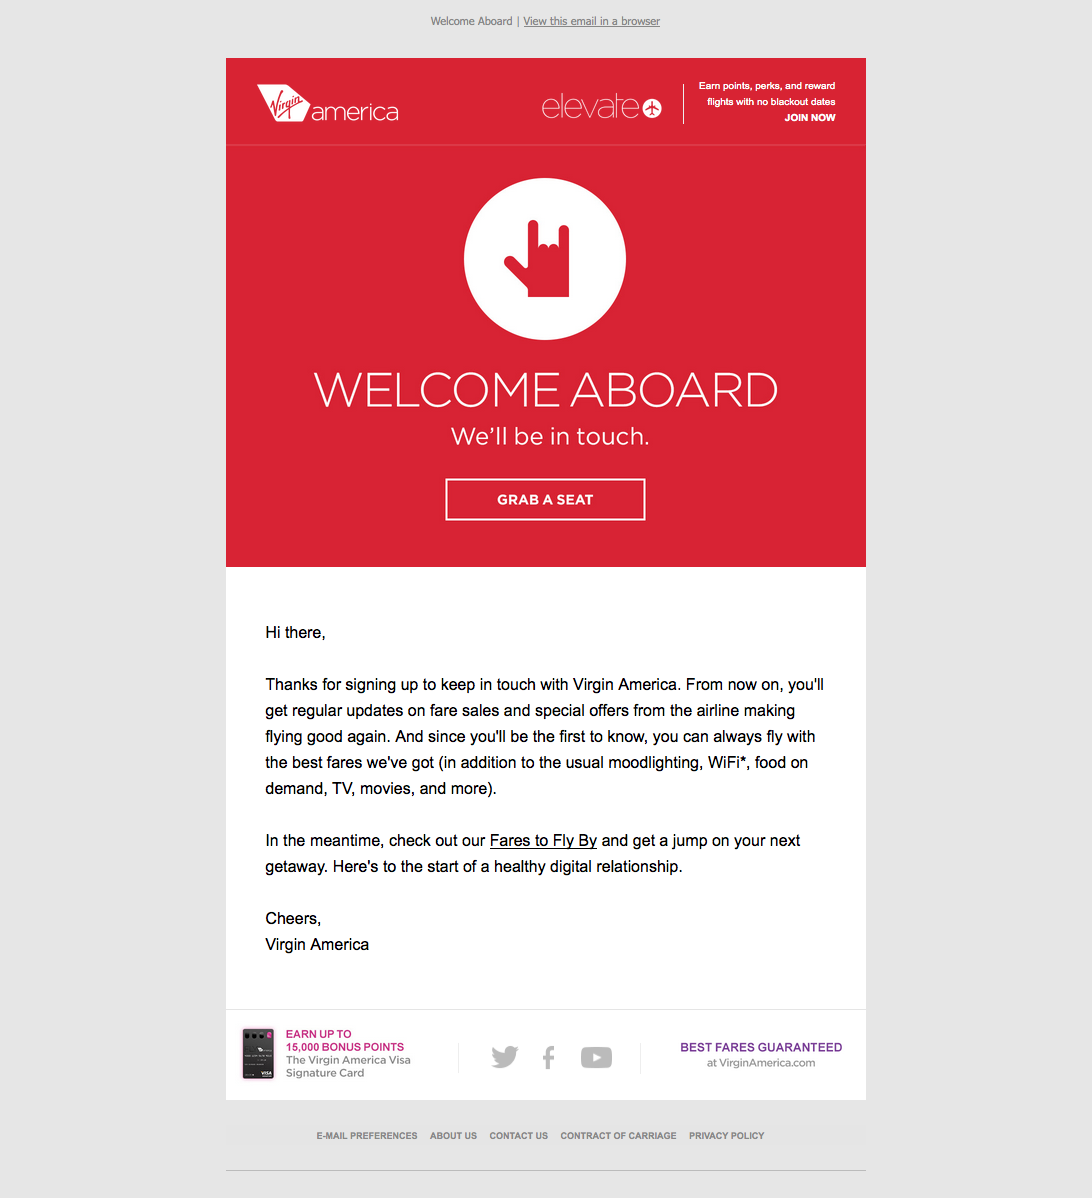 Virgin America welcome email with a red CTA to get started